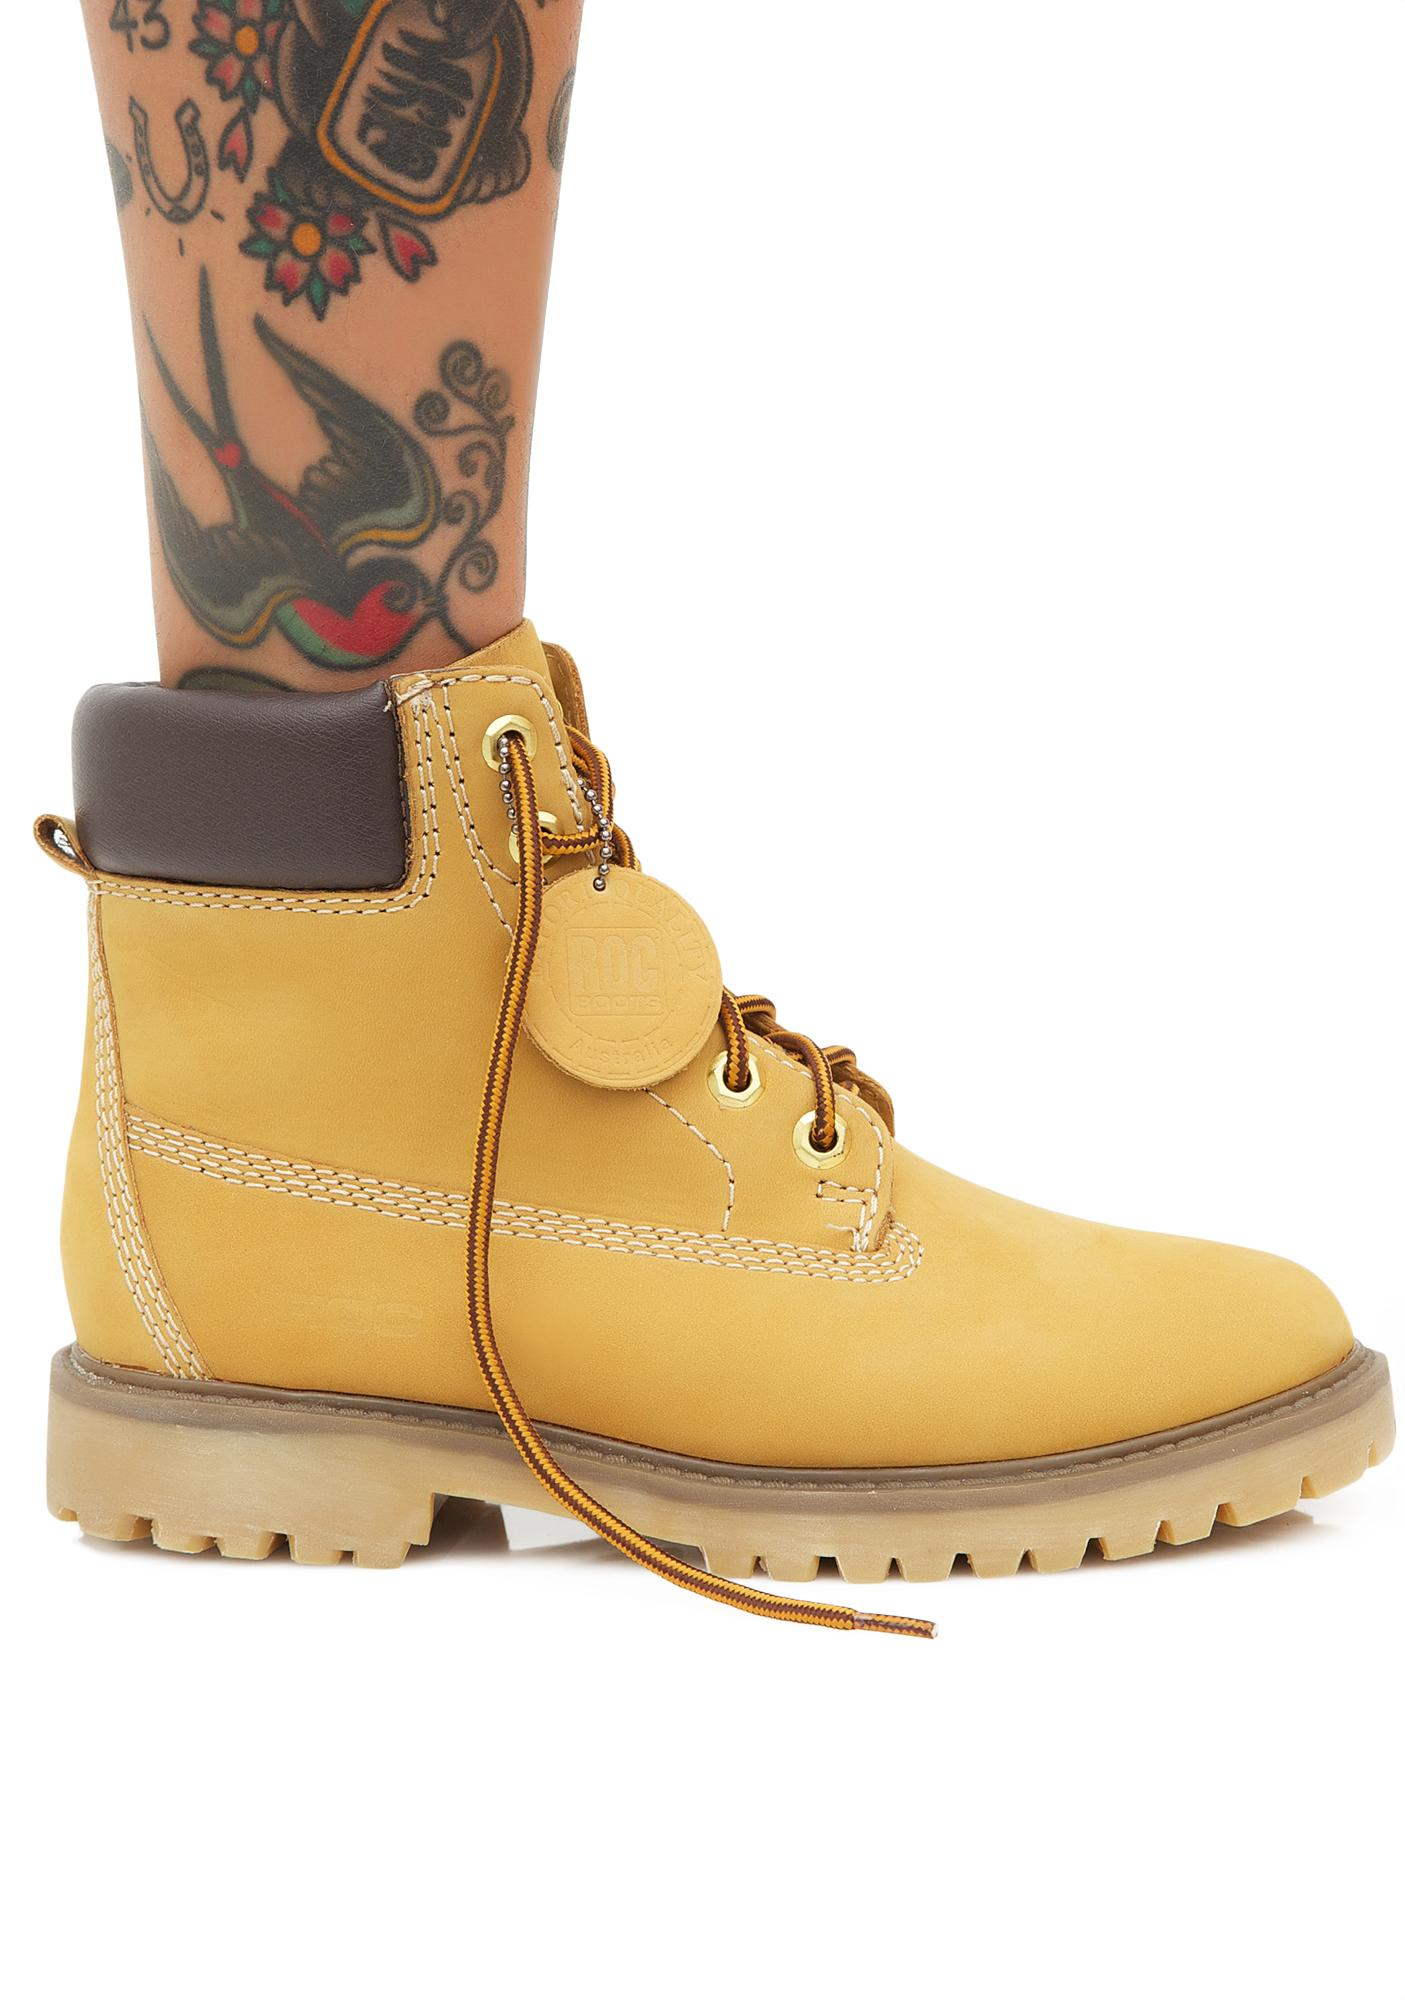 ROC Boots Rover Boots